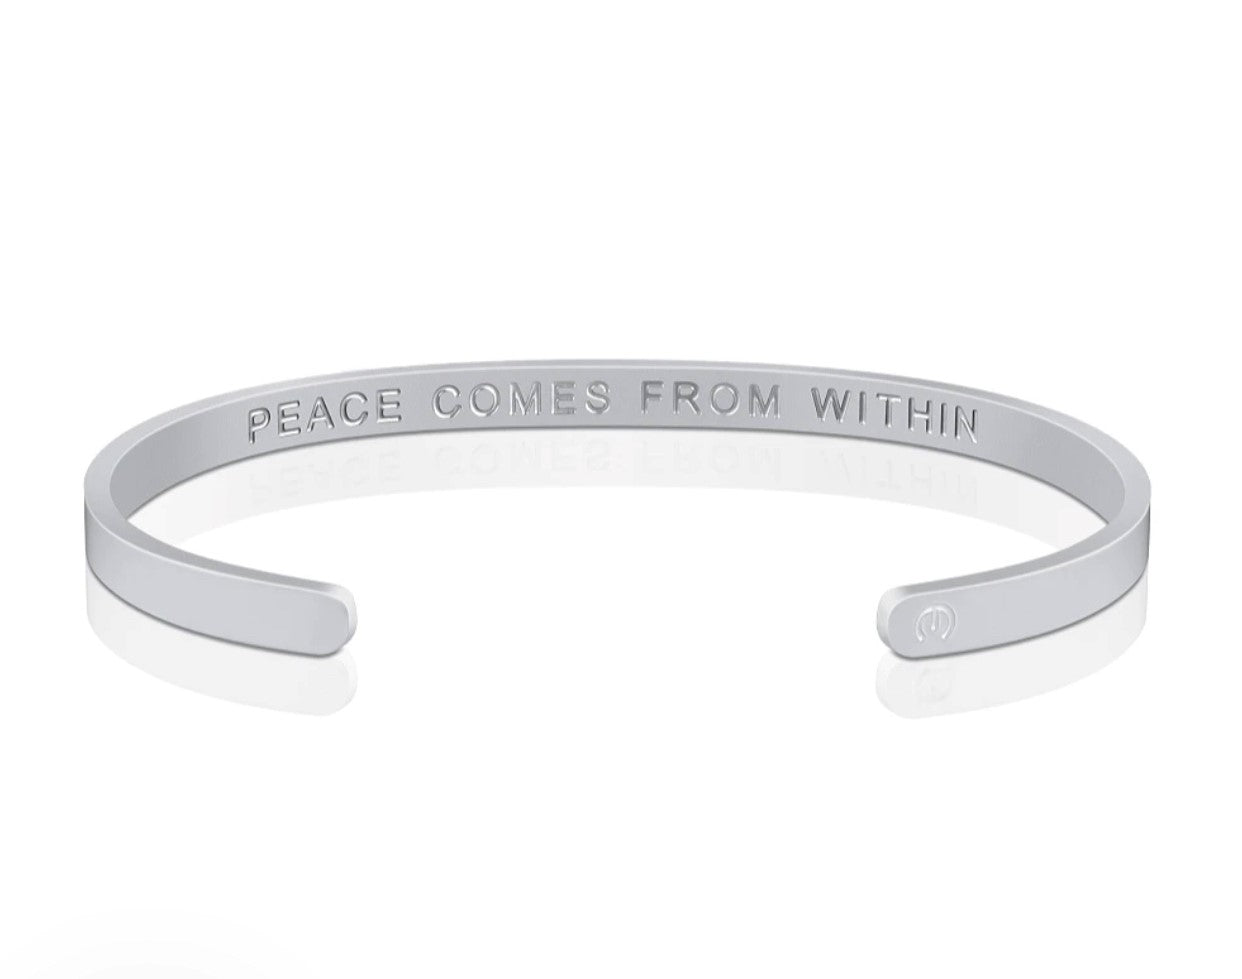 PEACE COMES FROM WITHIN MANTRABAND - MENS